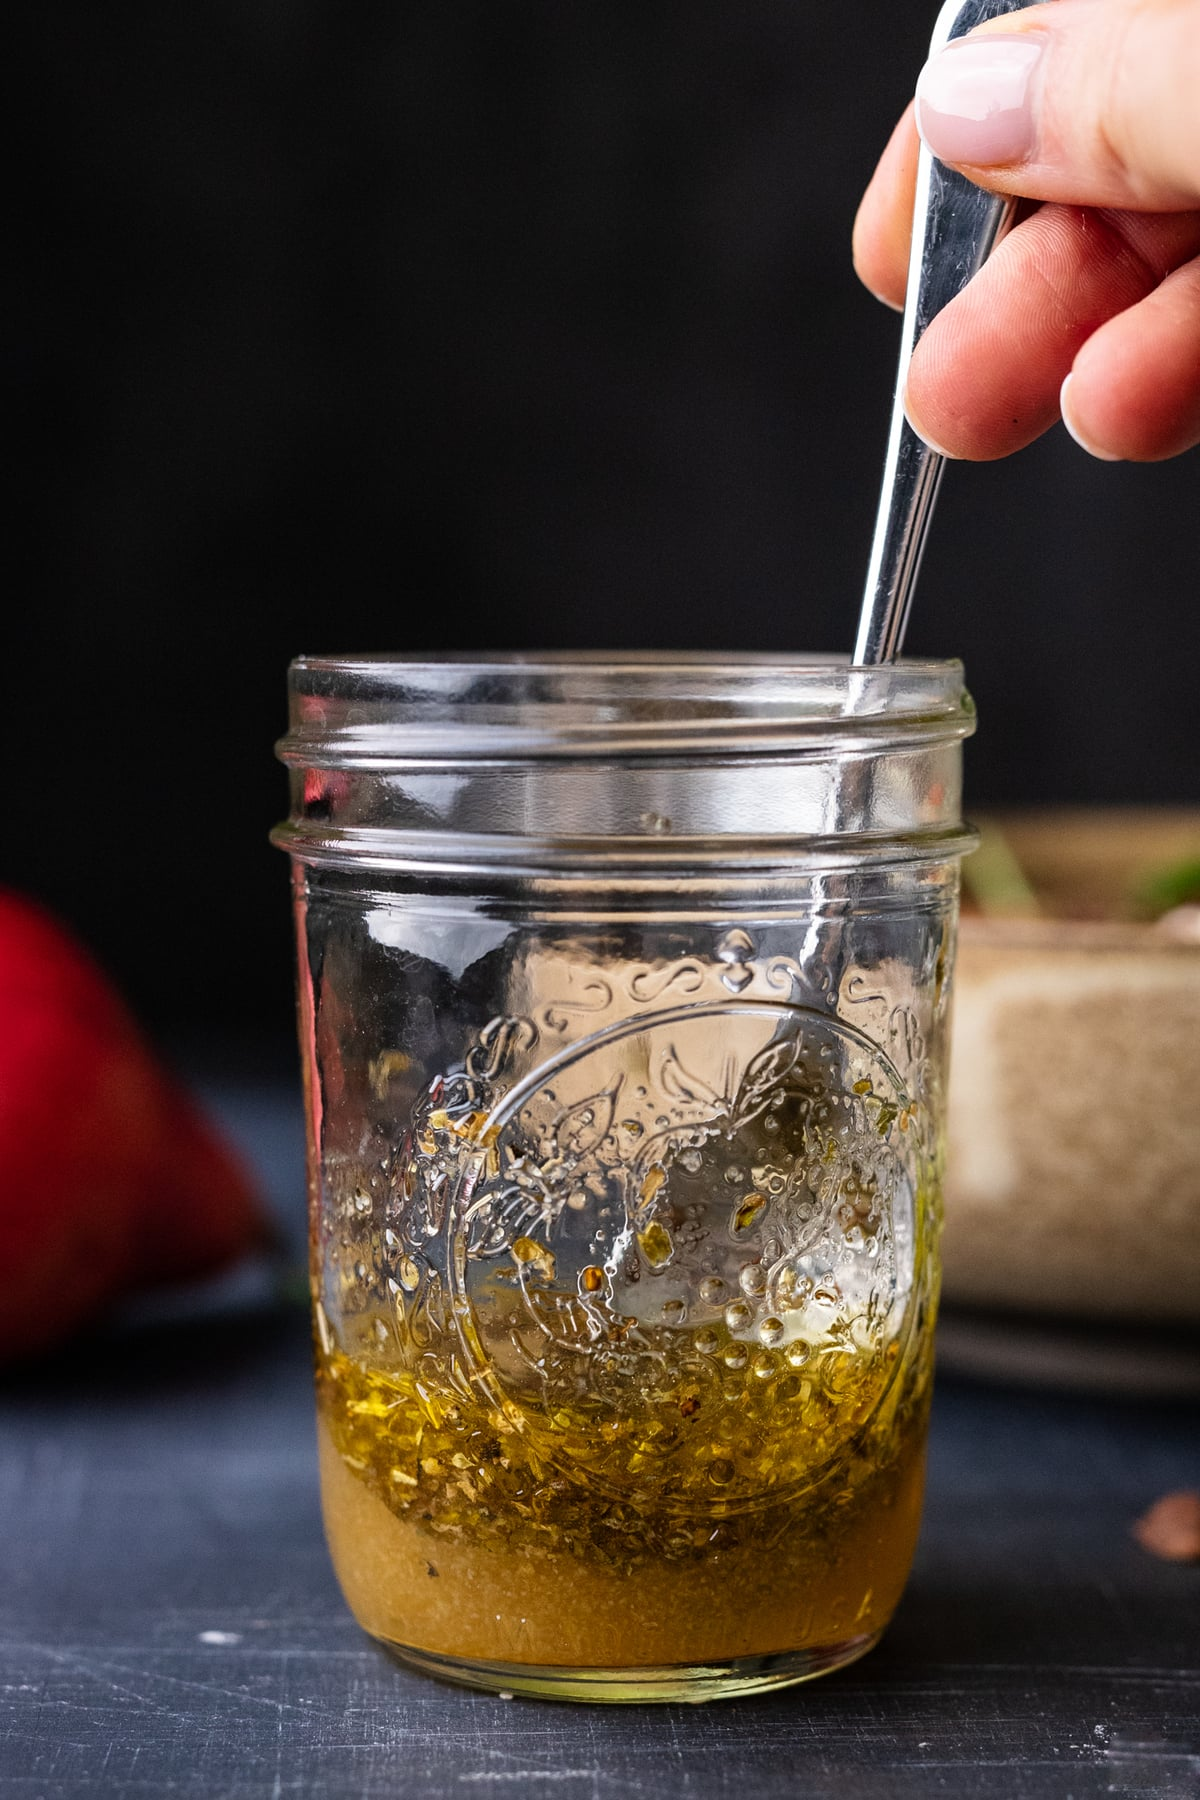 A hand stirring salad dressing in a small jar, with a red pear and bowl sitting behind it.